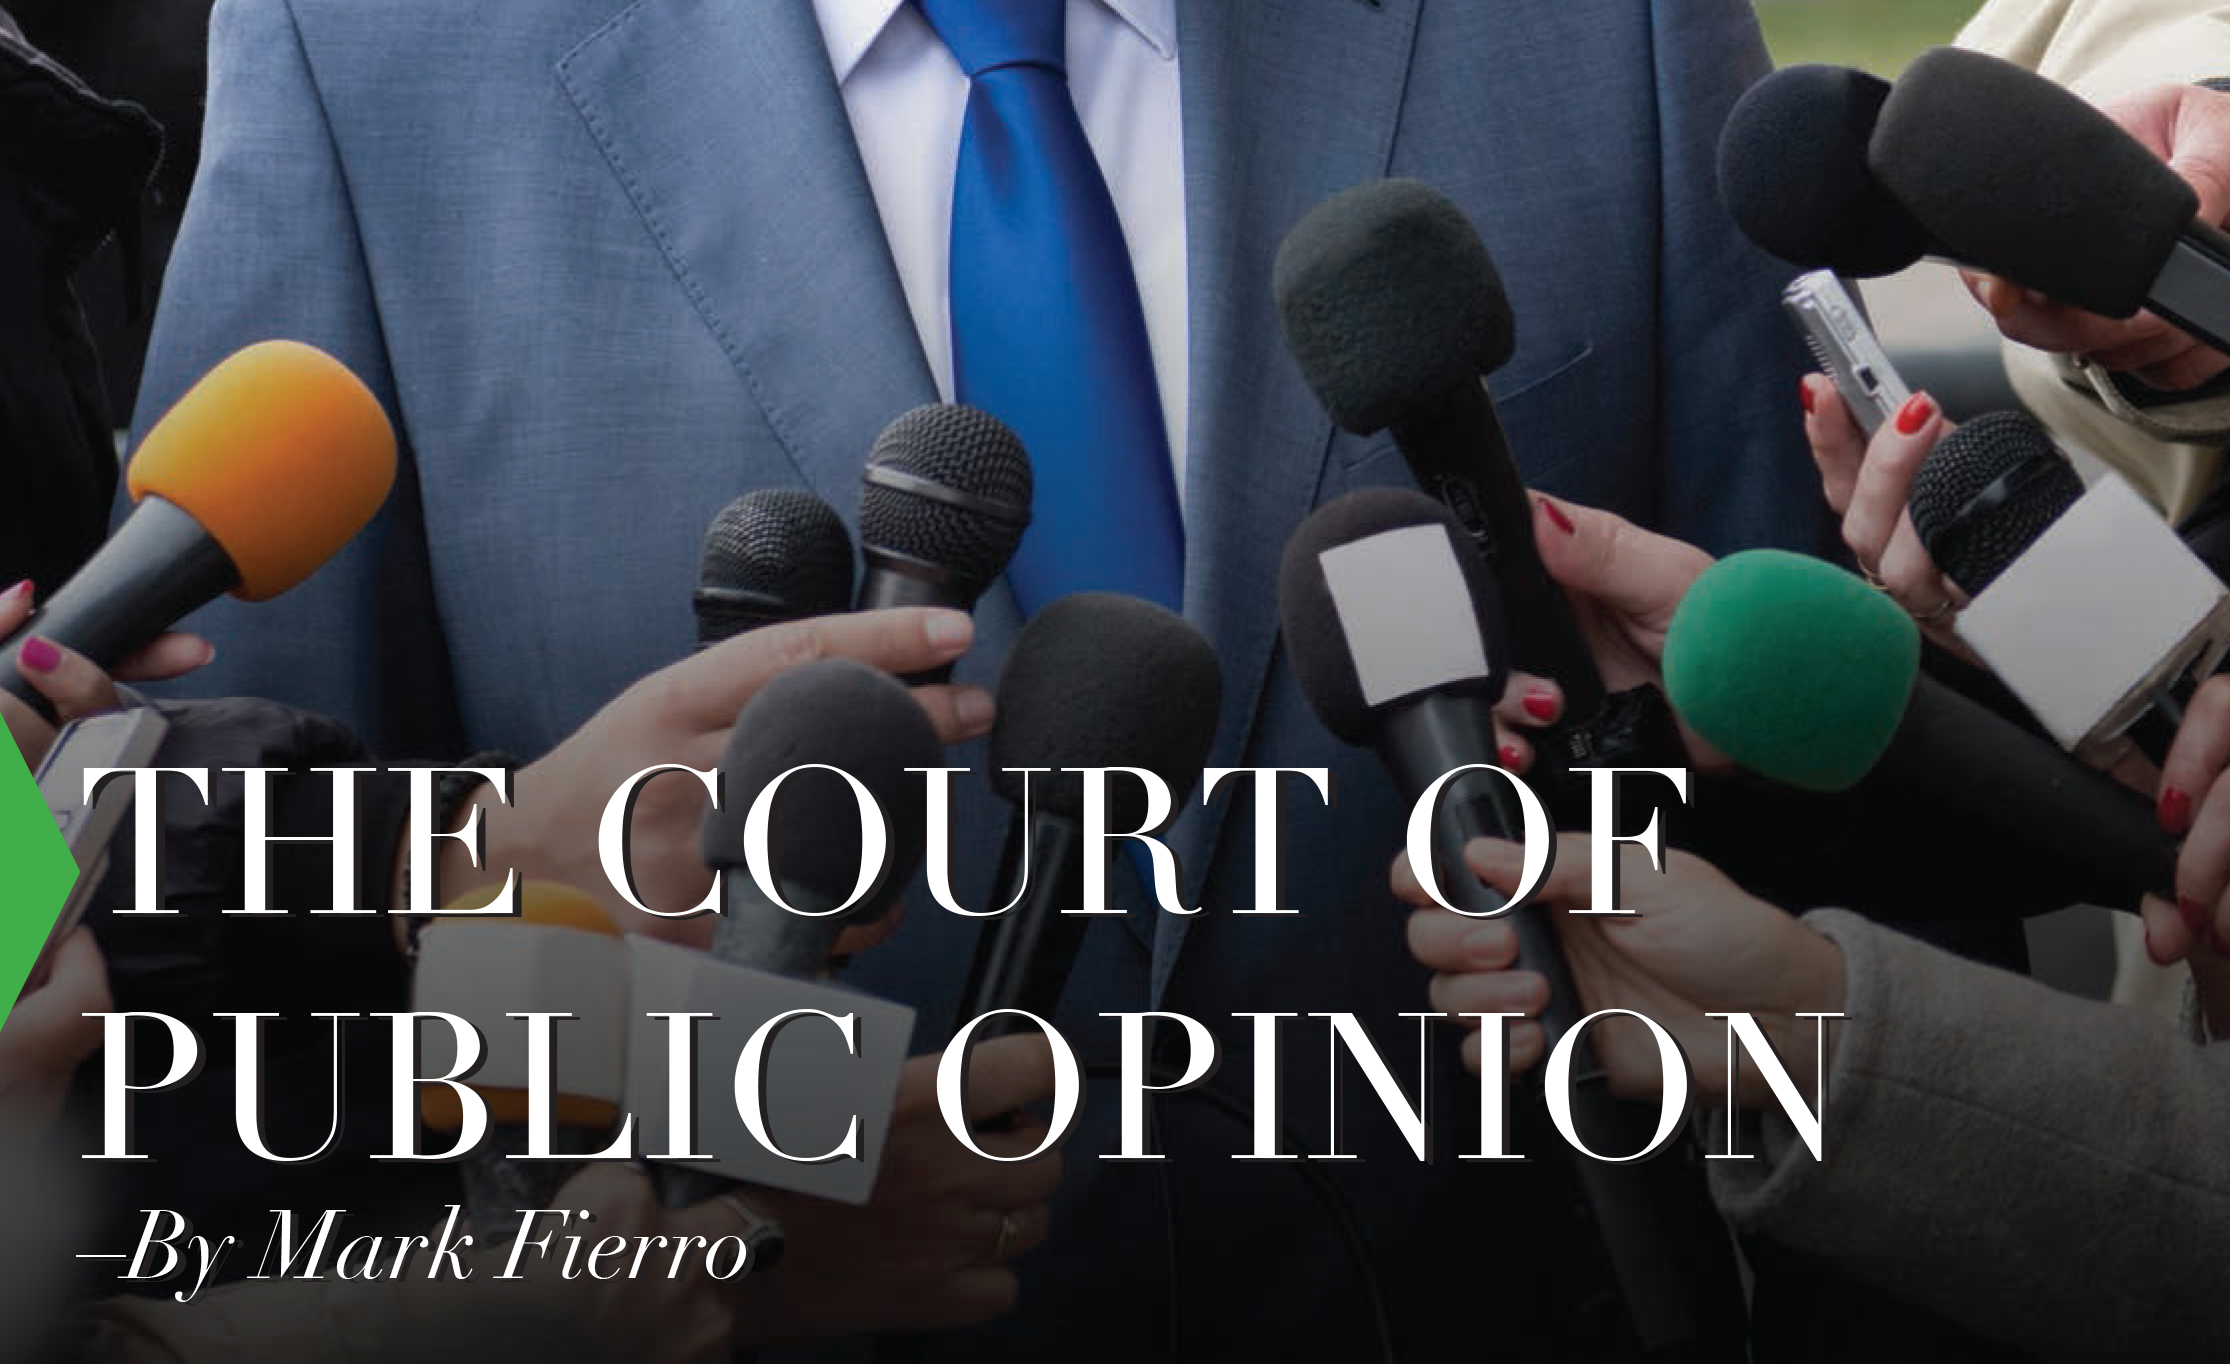 Of Public Opinion